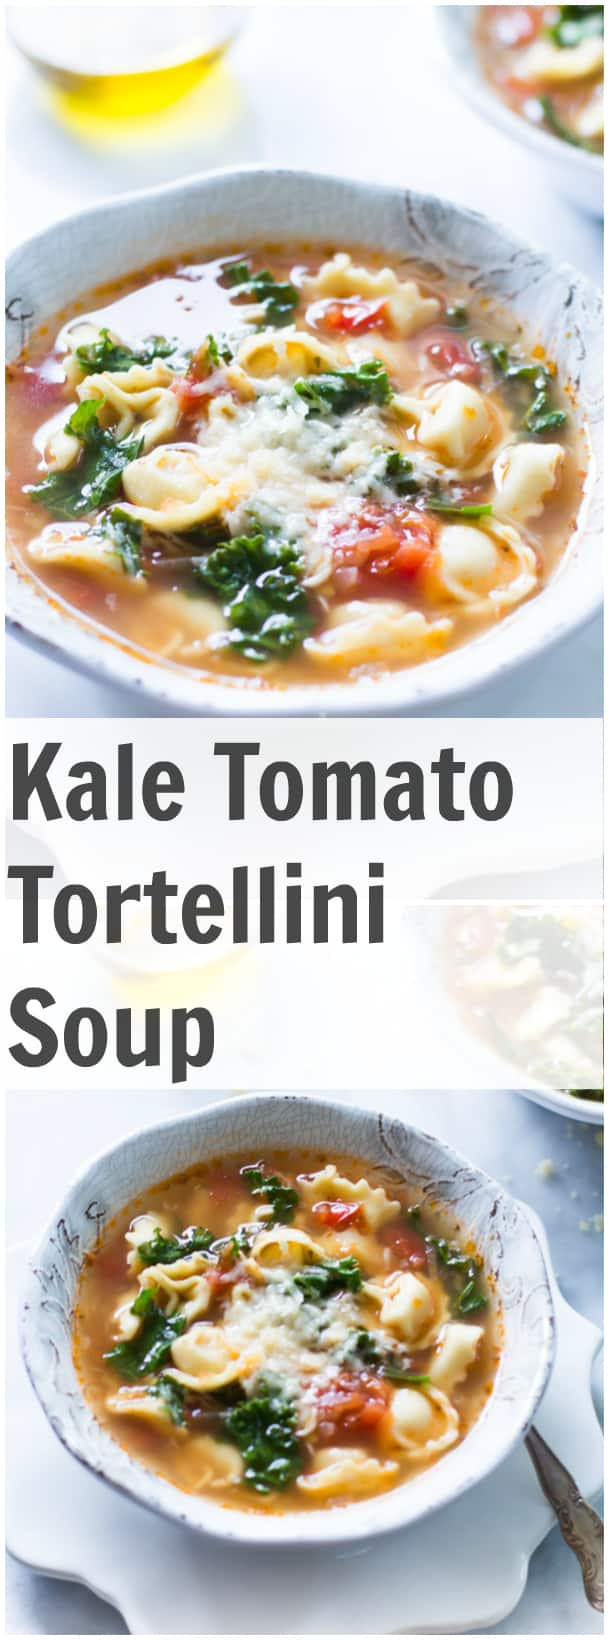 This Kale Tomato Tortellini Soup with has become the favourite soup at home just because it is so flavourful and it is the easiest soup to make ever! We love it!